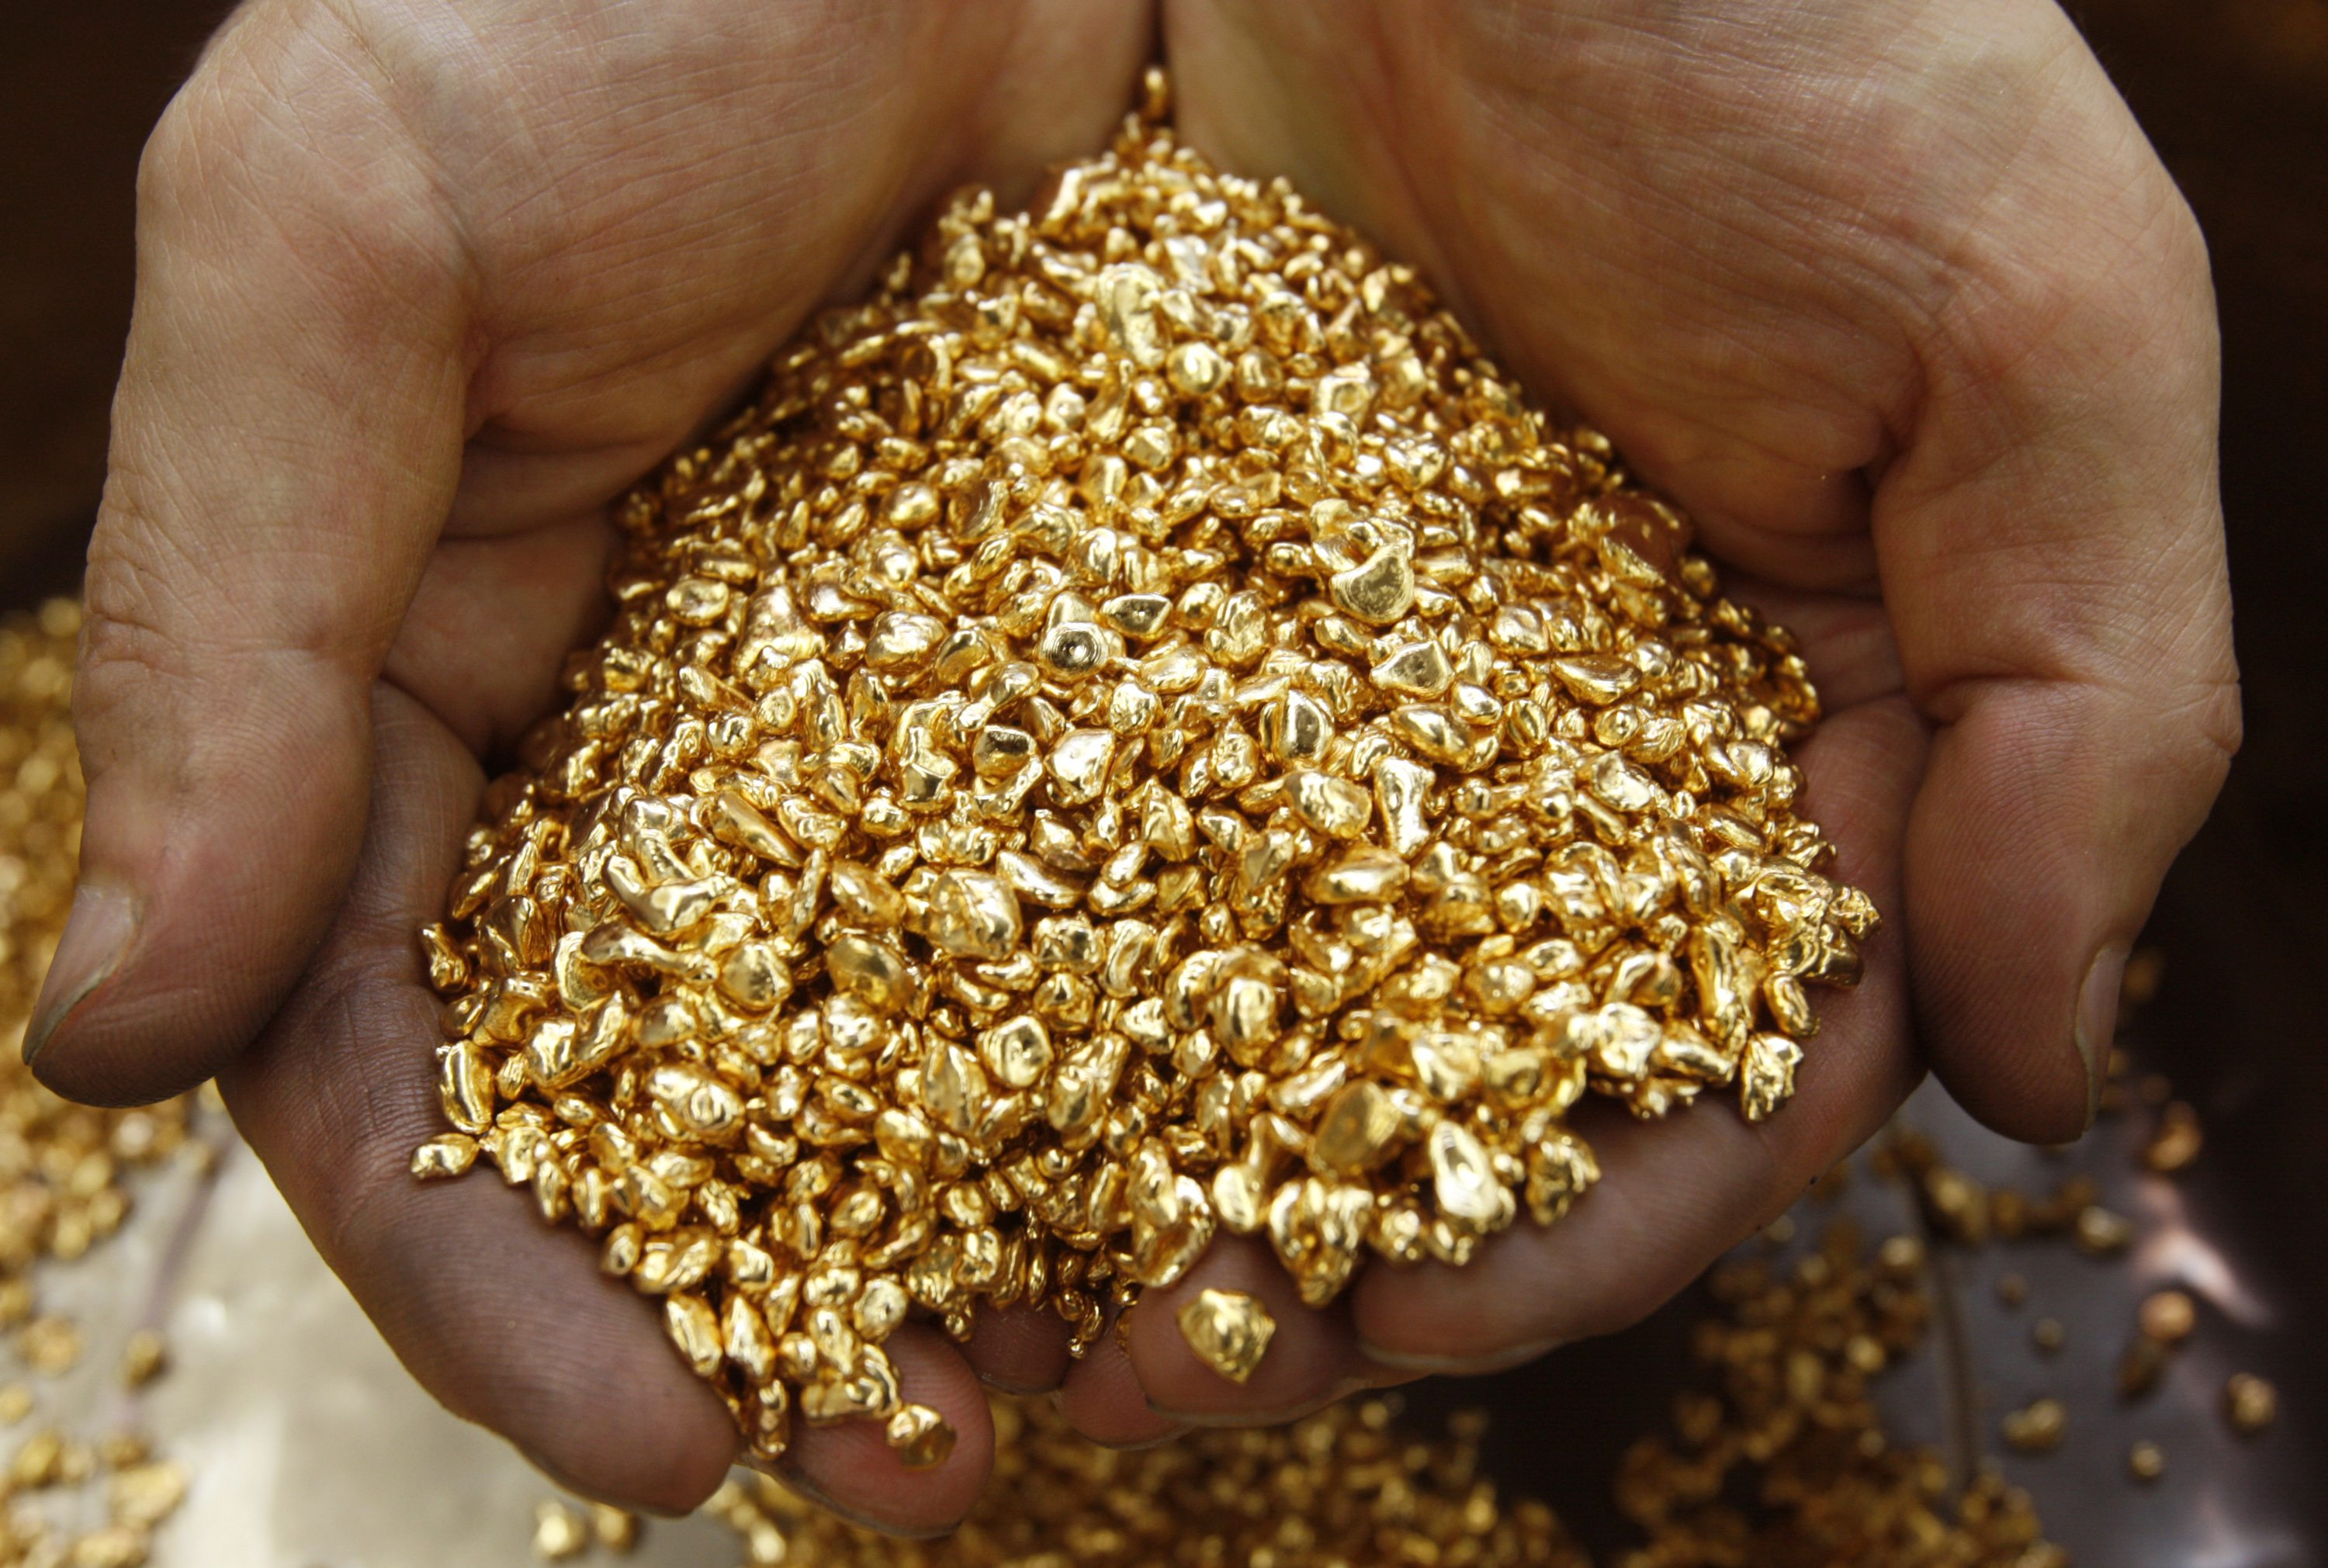 A worker scoops gold shots at a jewellery factory in Chiba, east of Tokyo